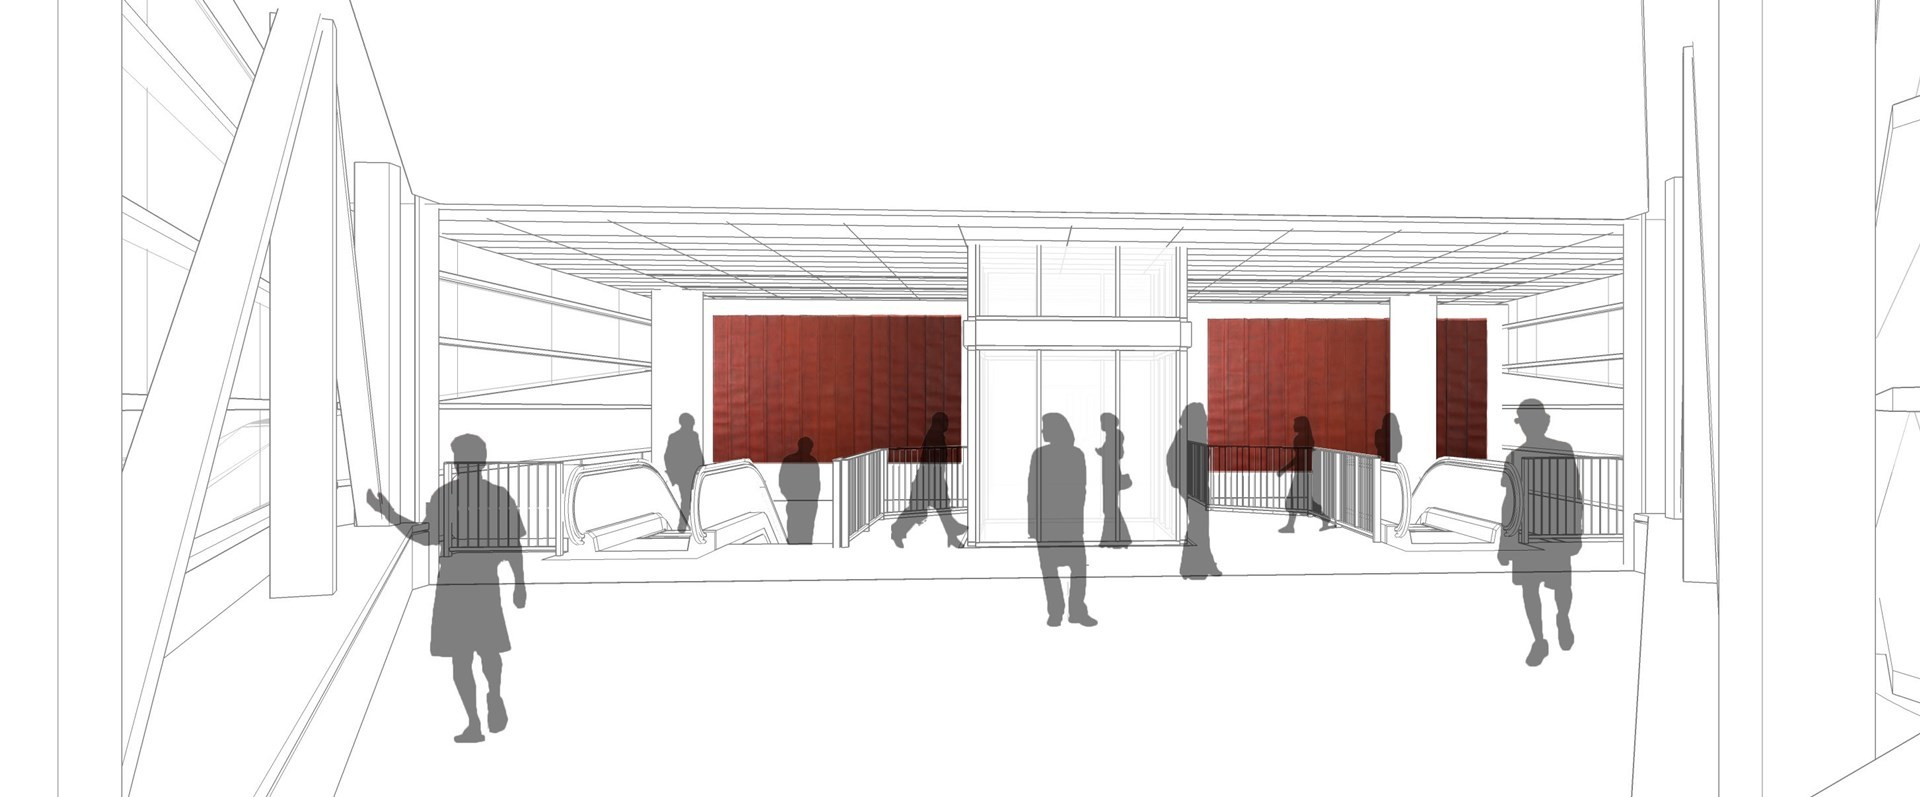 Artist Theaster Gates' conceptual rendering of america, america – the new public art planned for the south terminal building at the 95th Street Red Line station.